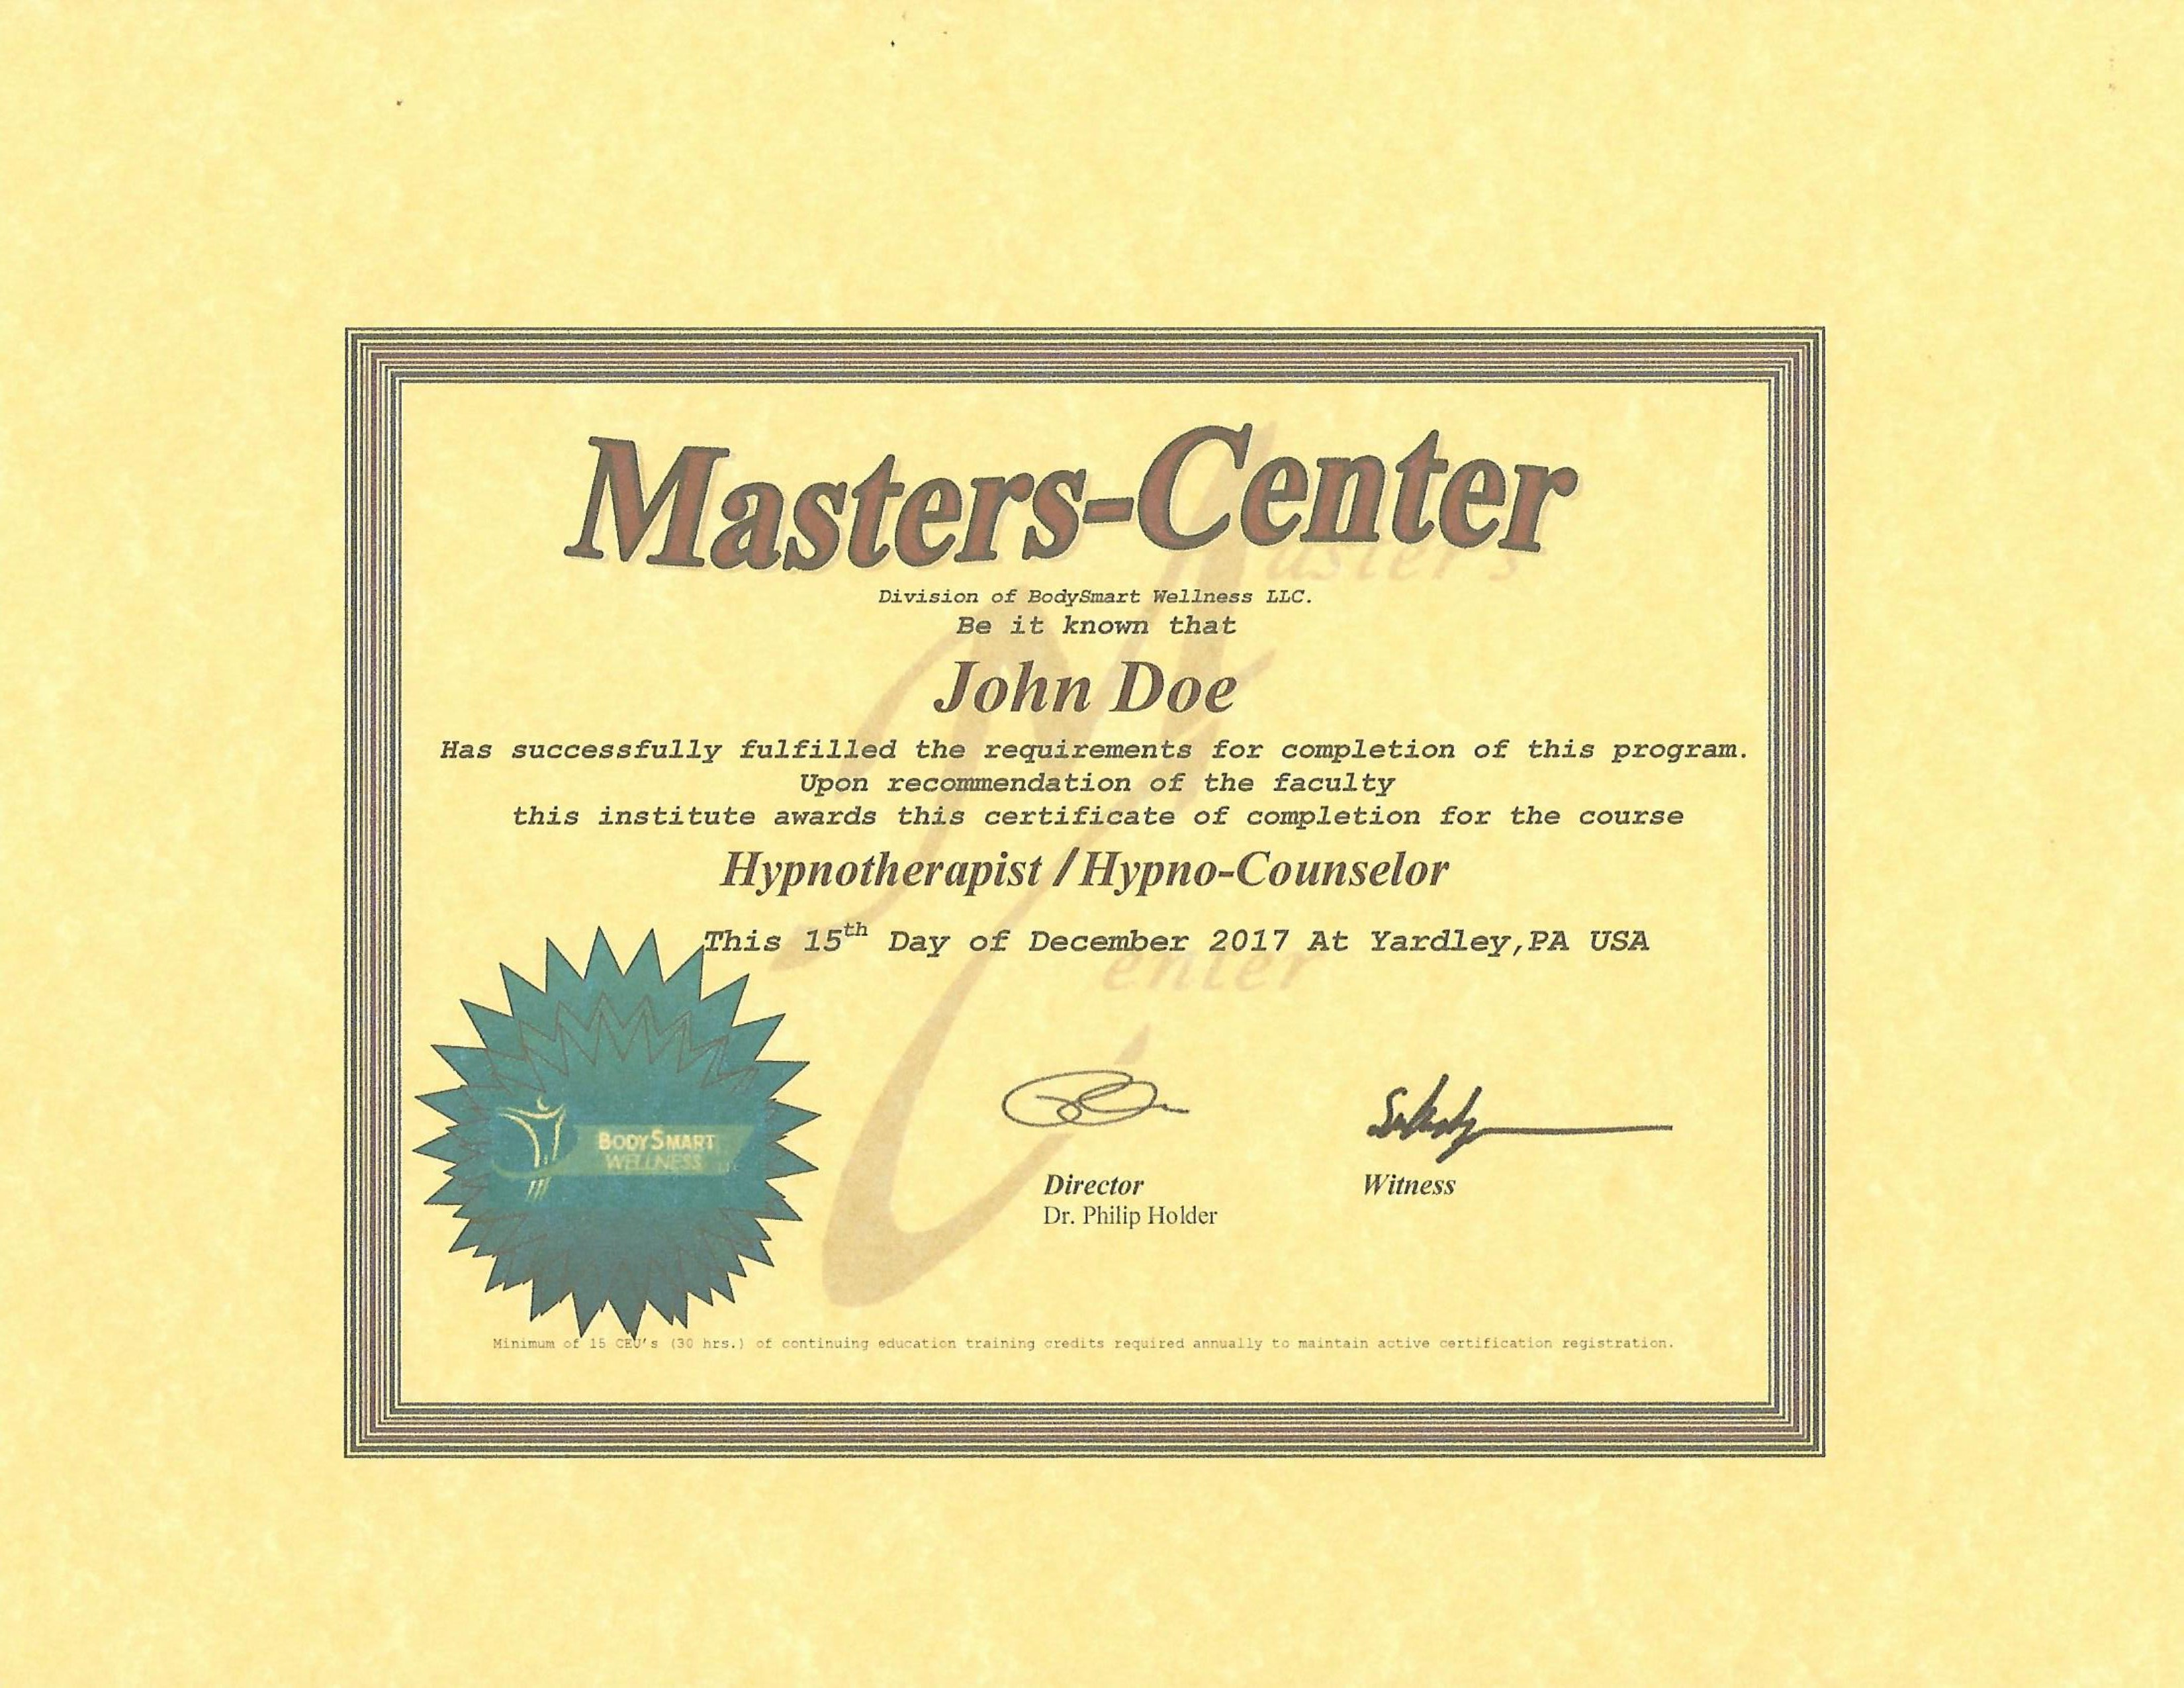 Hypnotherapy Hypno Counseling Certification Courses Masters